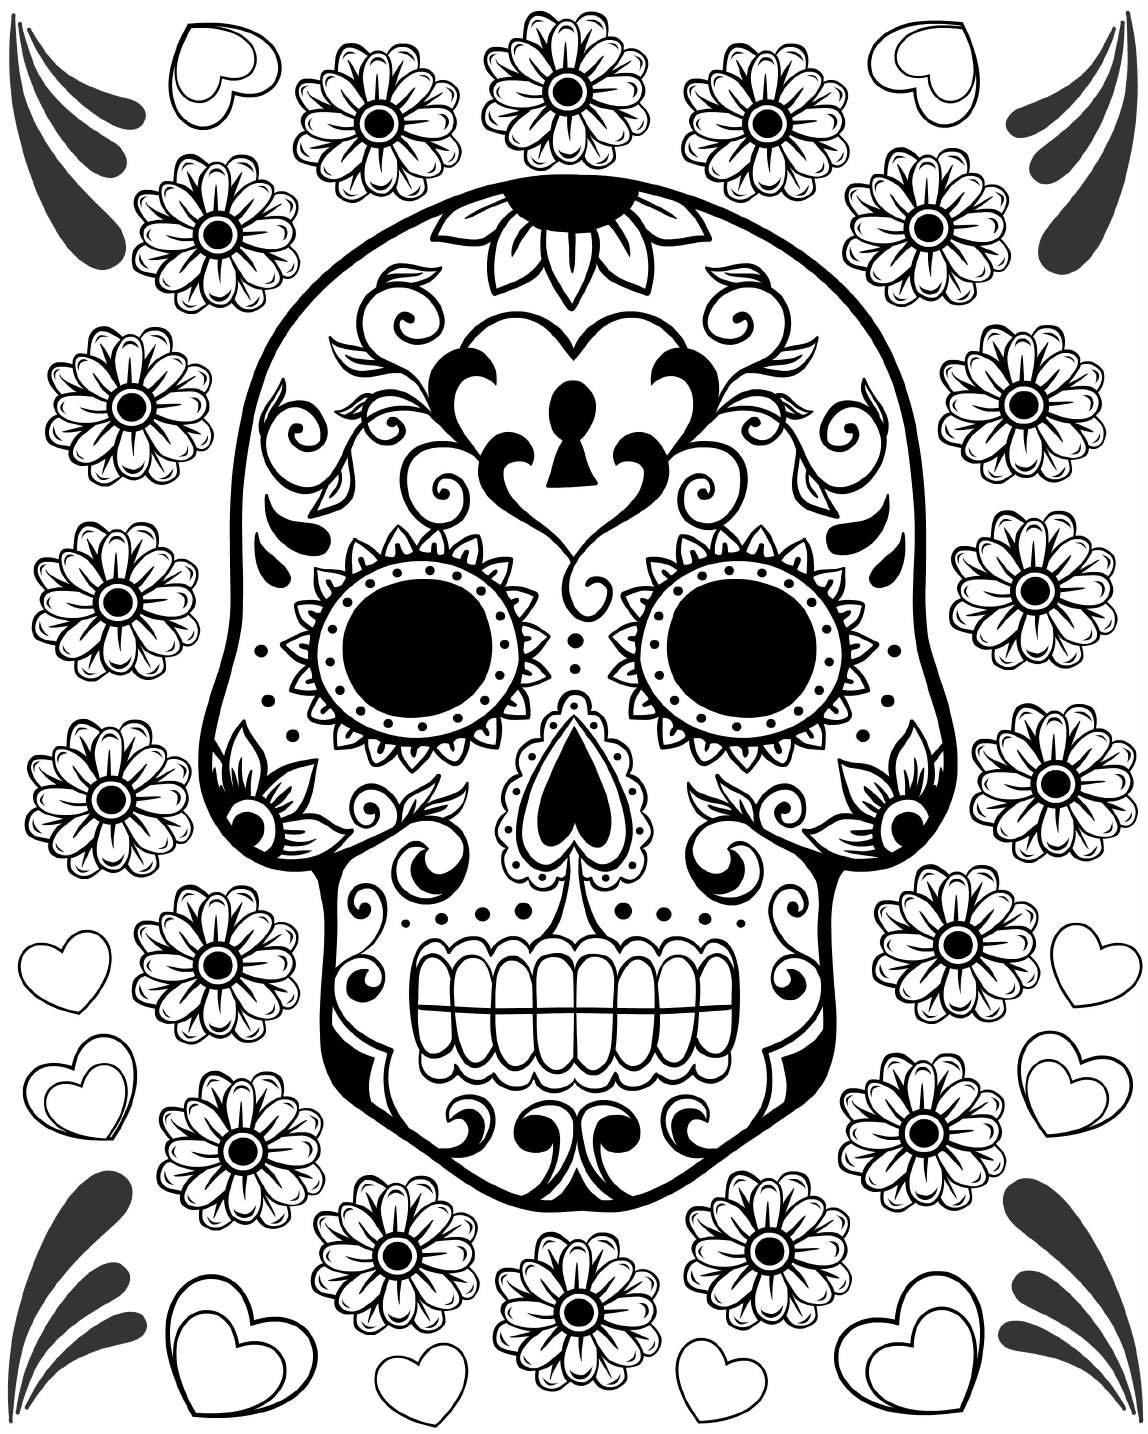 day of the dead printable coloring pages day of the dead coloring page skull coloring pages printable of the day coloring dead pages